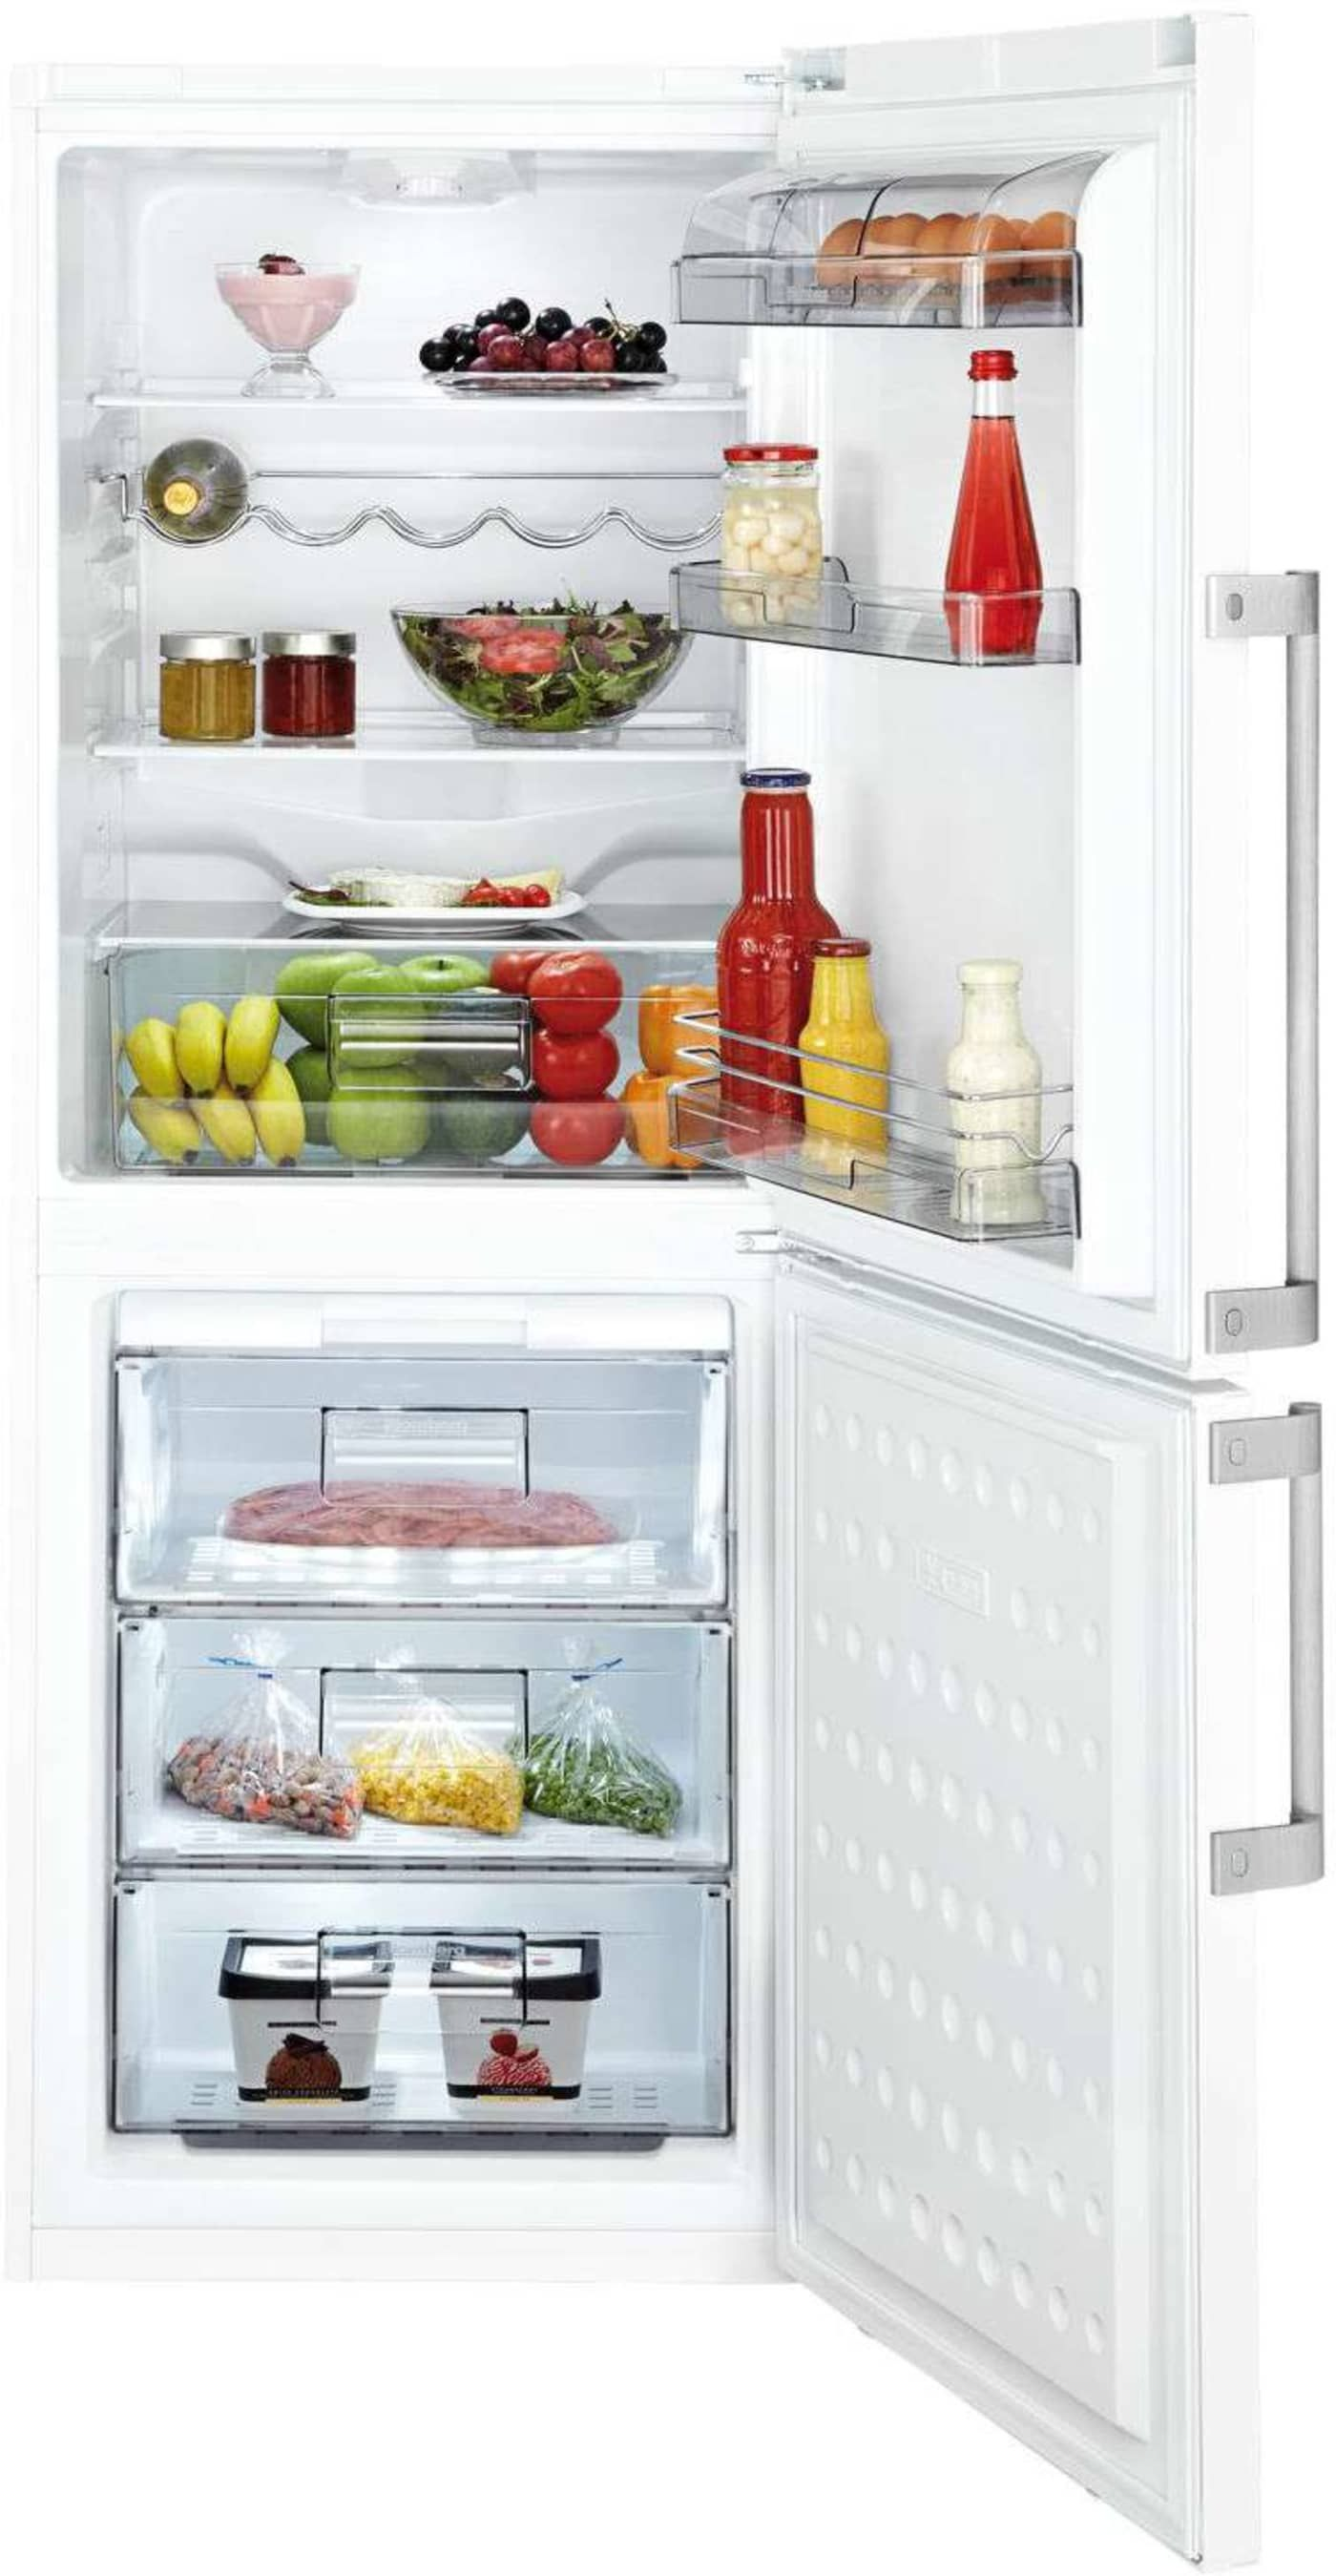 Brfb1044wh By Blomberg Bottom Freezer Refrigerators Goedekers Com Bottom Freezer Bottom Freezer Refrigerator Refrigerator